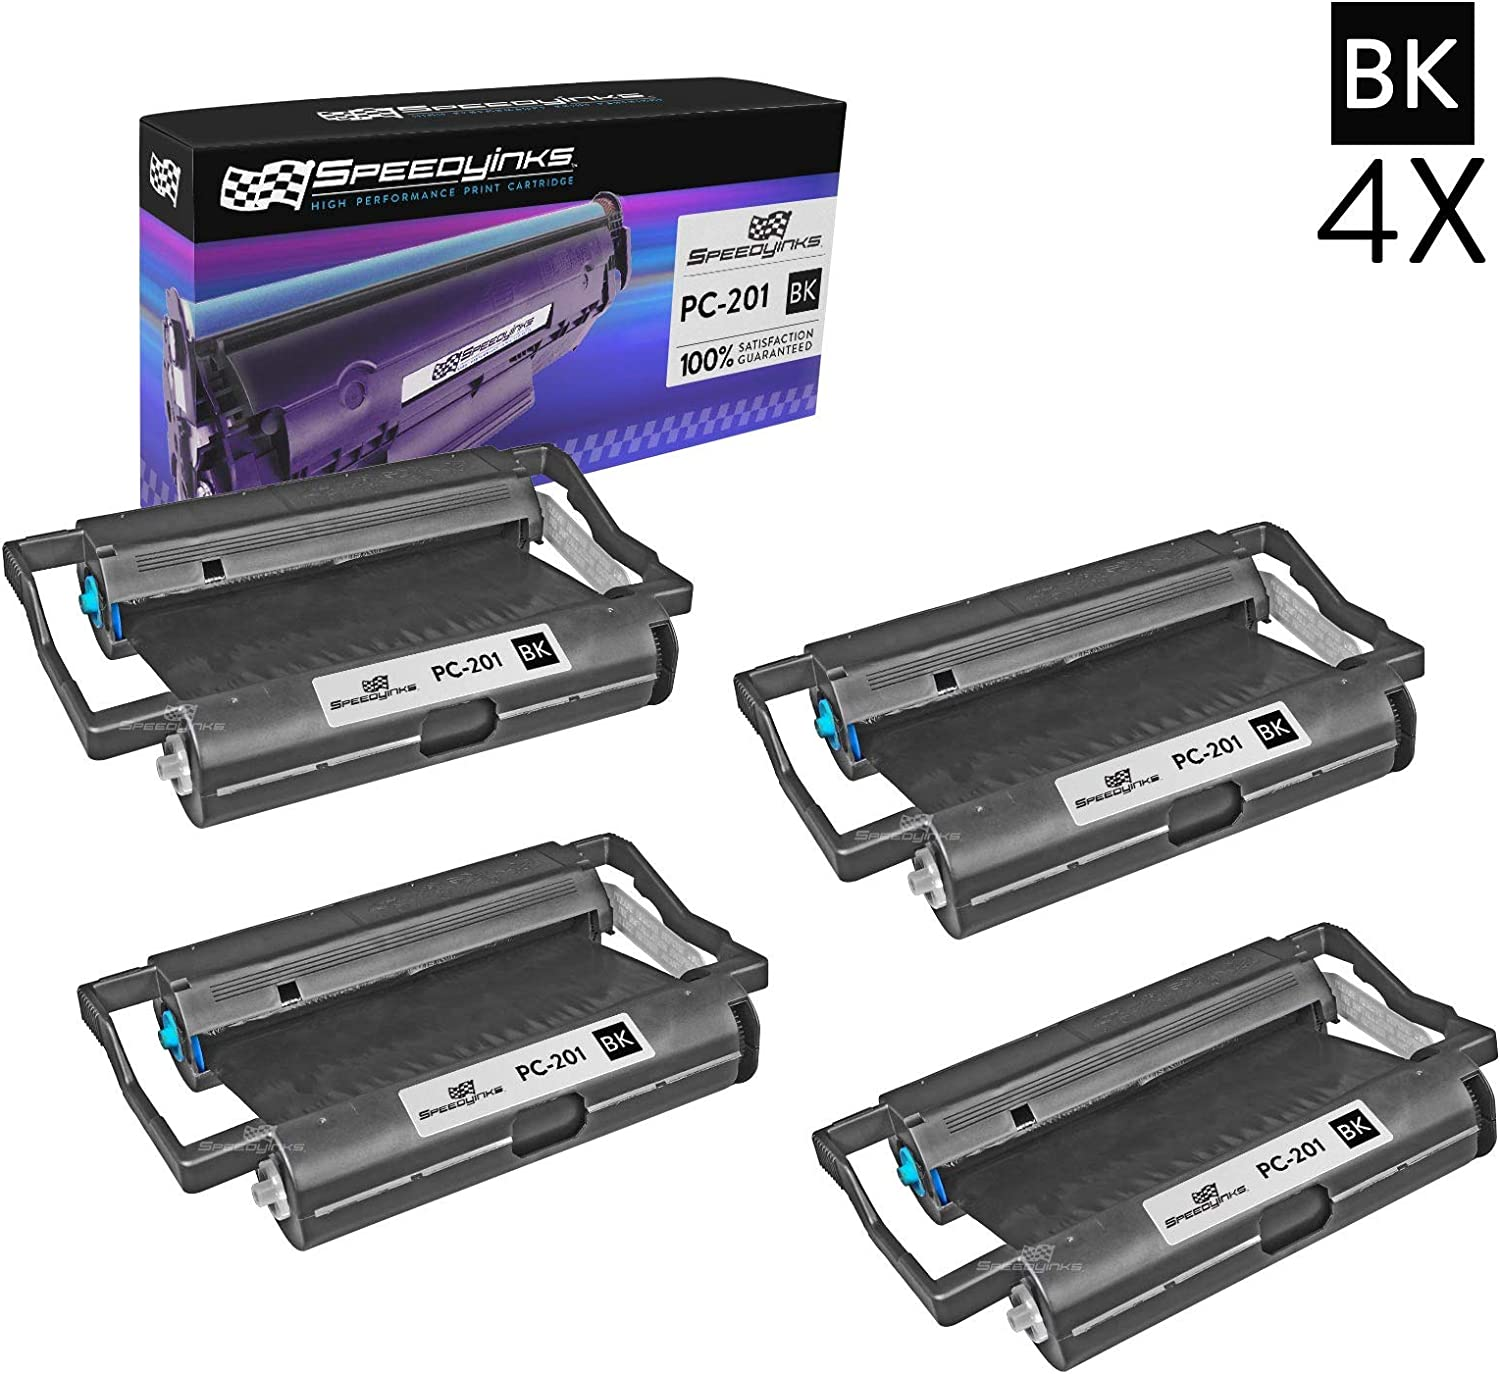 4PK Brother PC201 Compatible Fax Cartridge with Roll for Brother Intellifax 1170